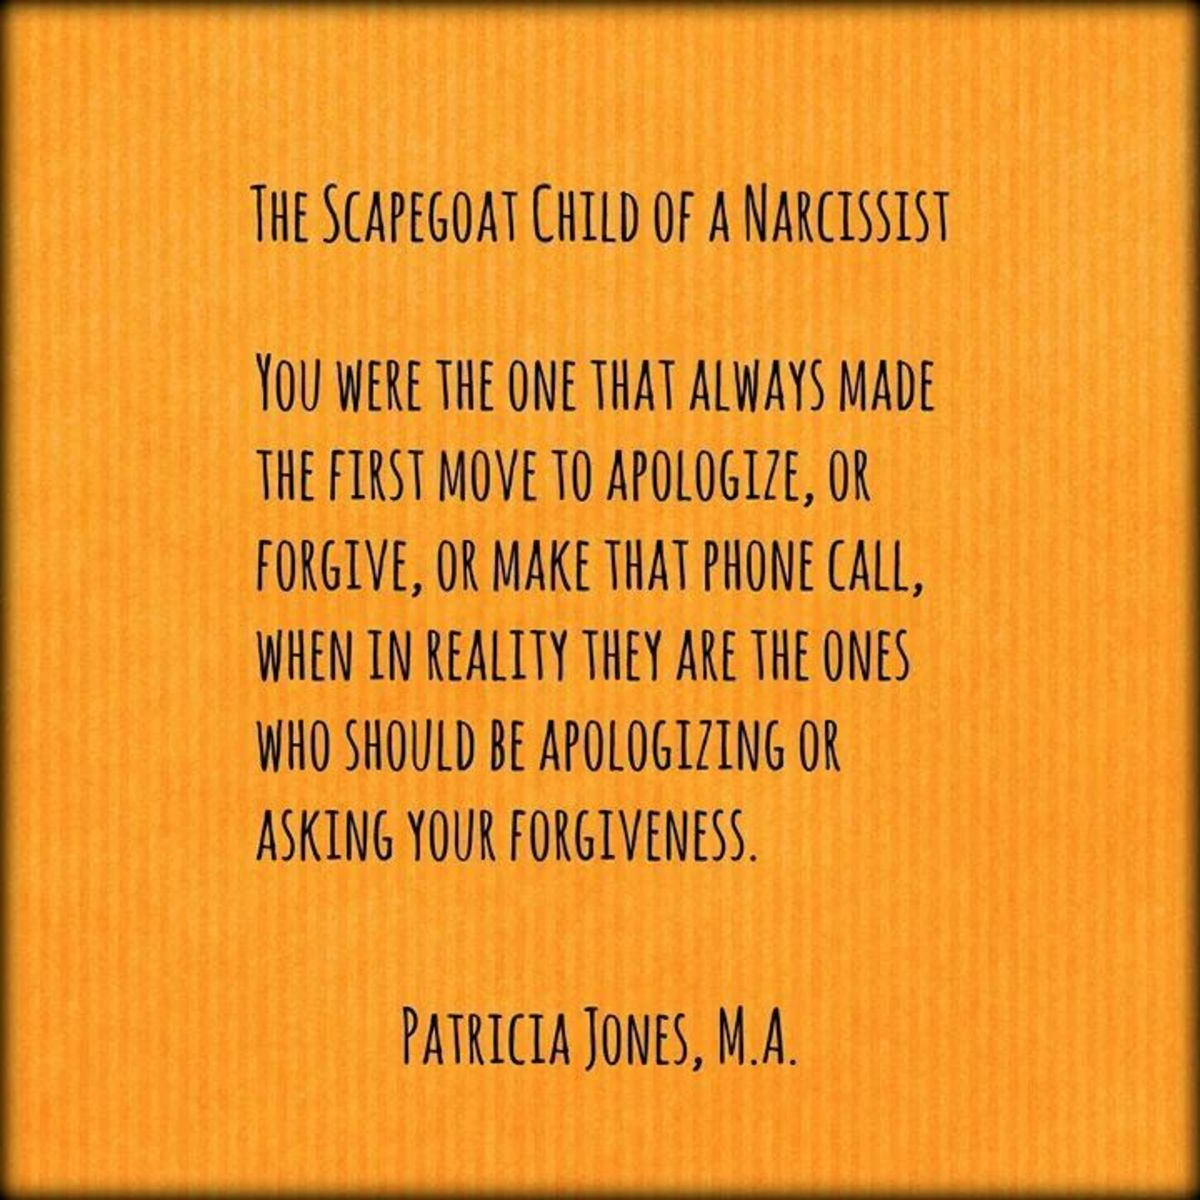 The Scapegoats of a Narcissistic Mother | HubPages